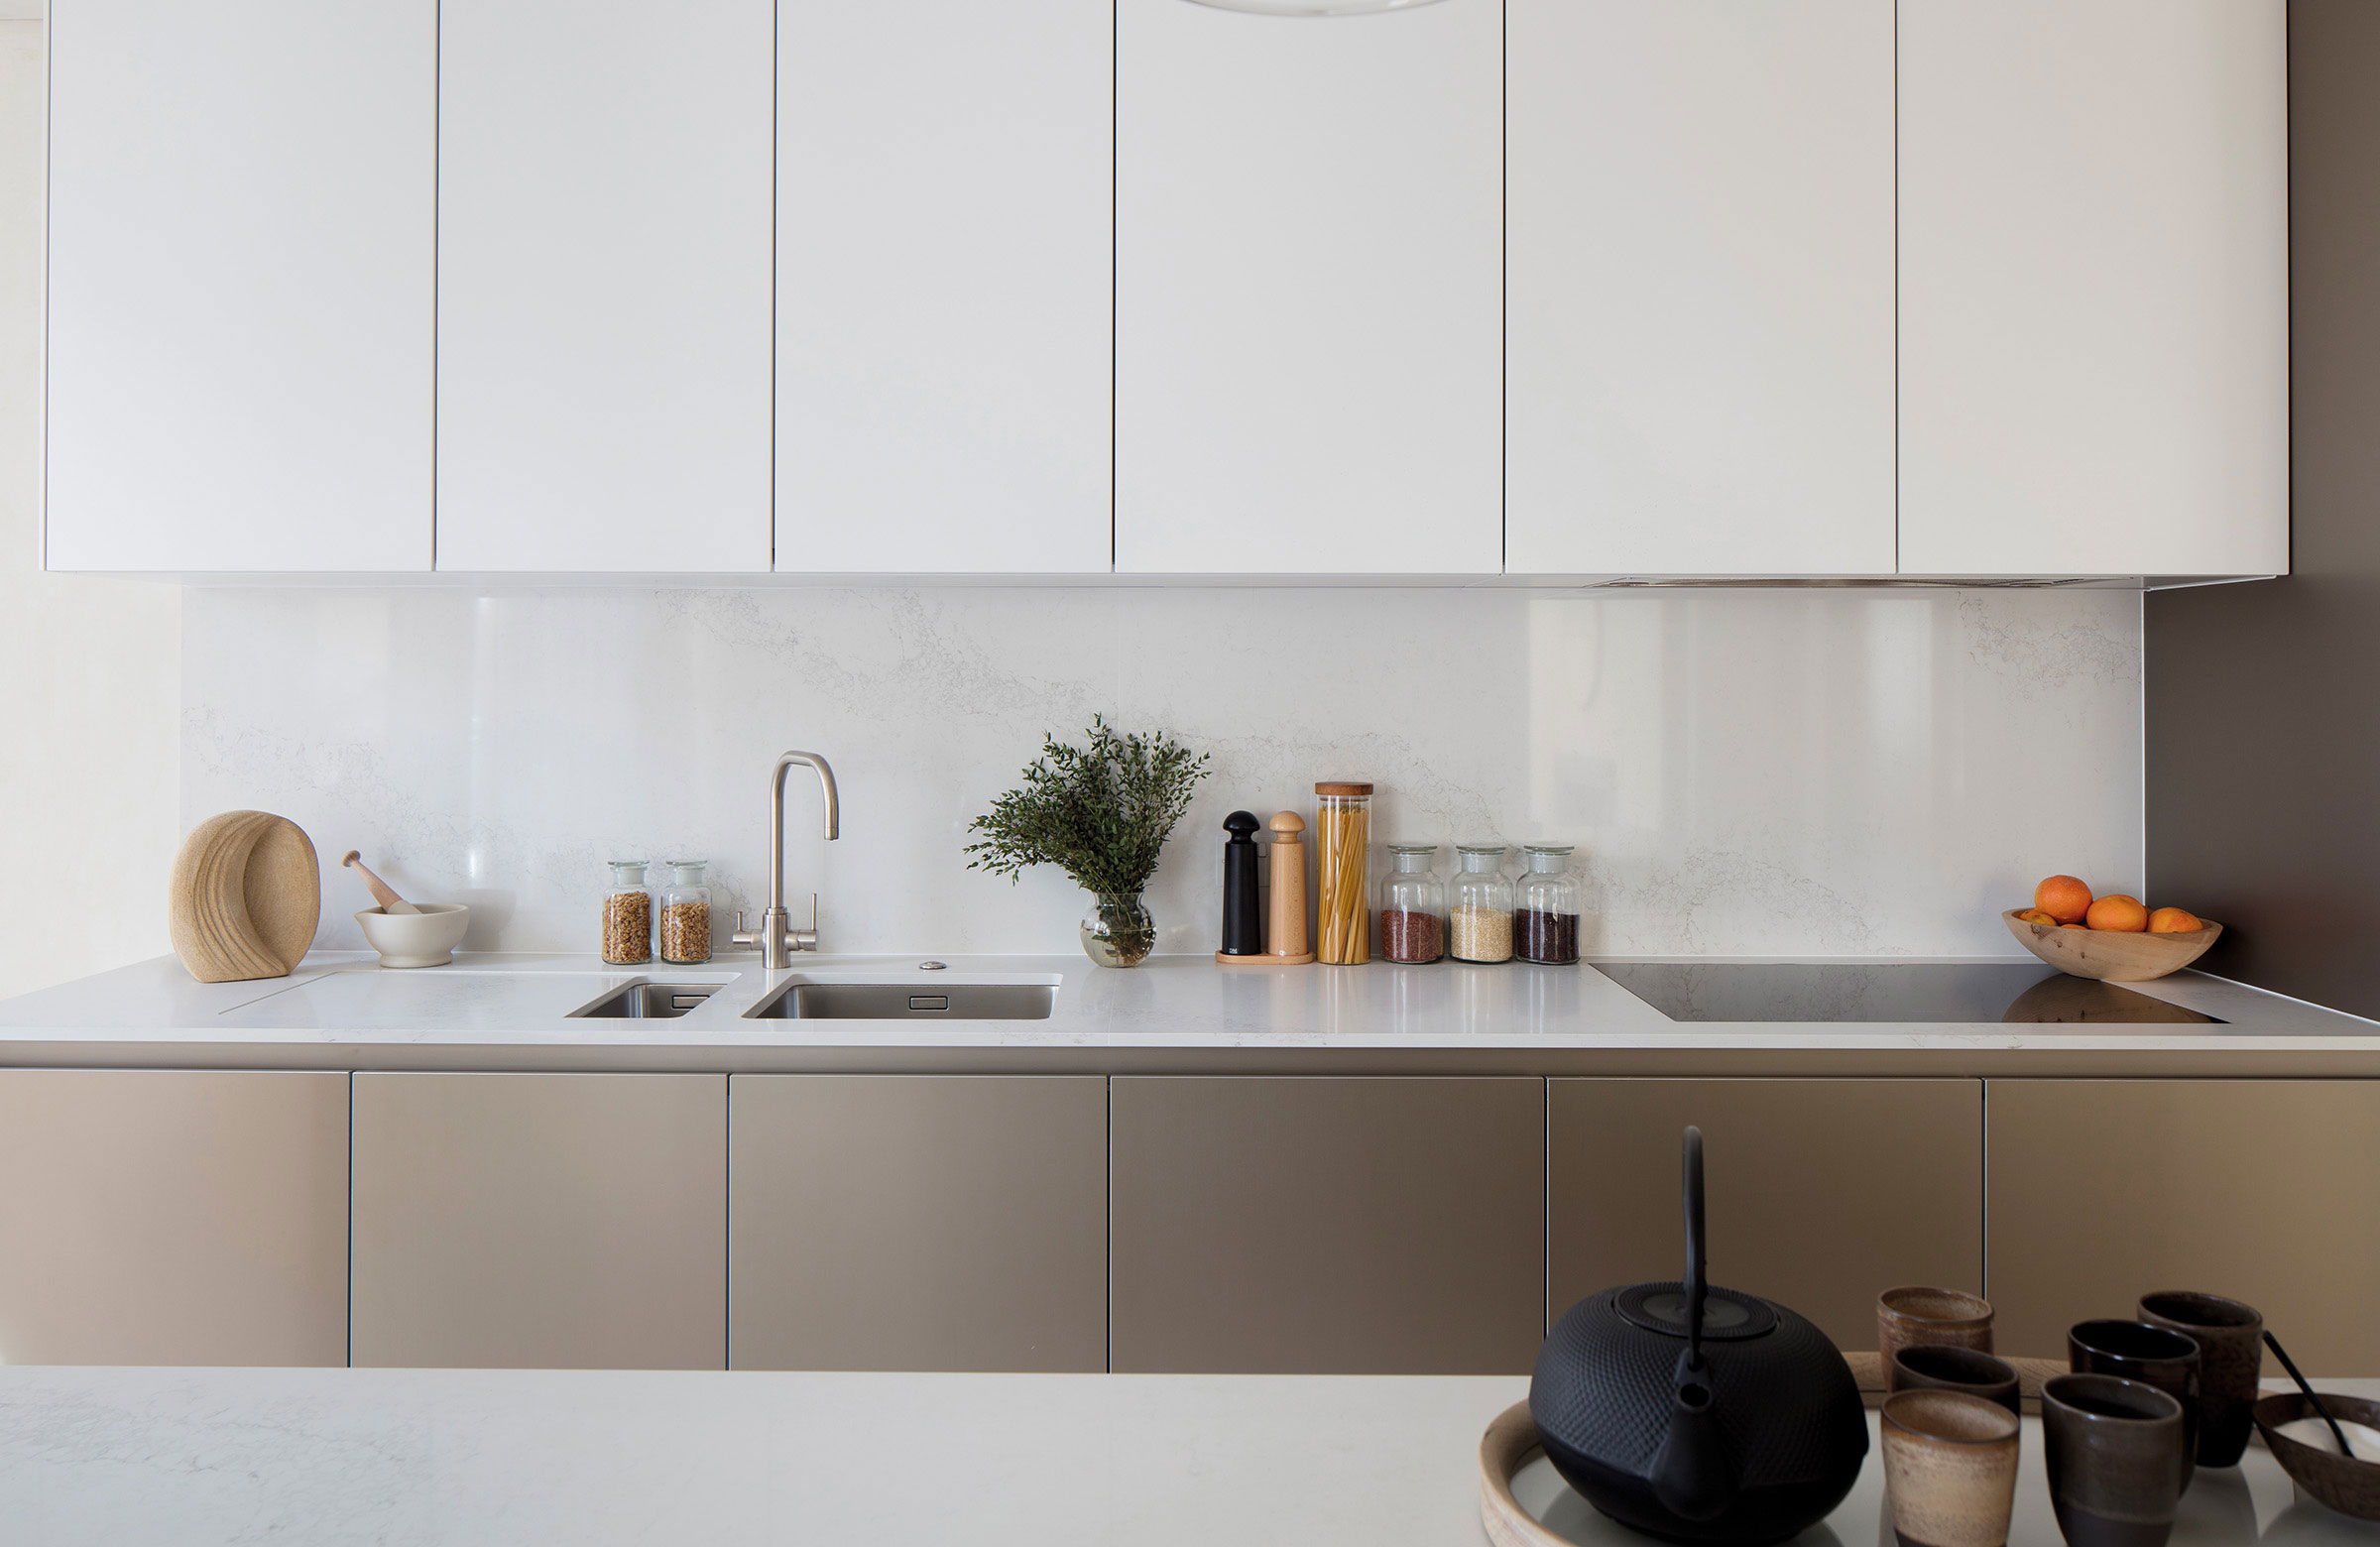 Bulthaup Kitchens Are Beautifully Equipped With Miele Appliances.